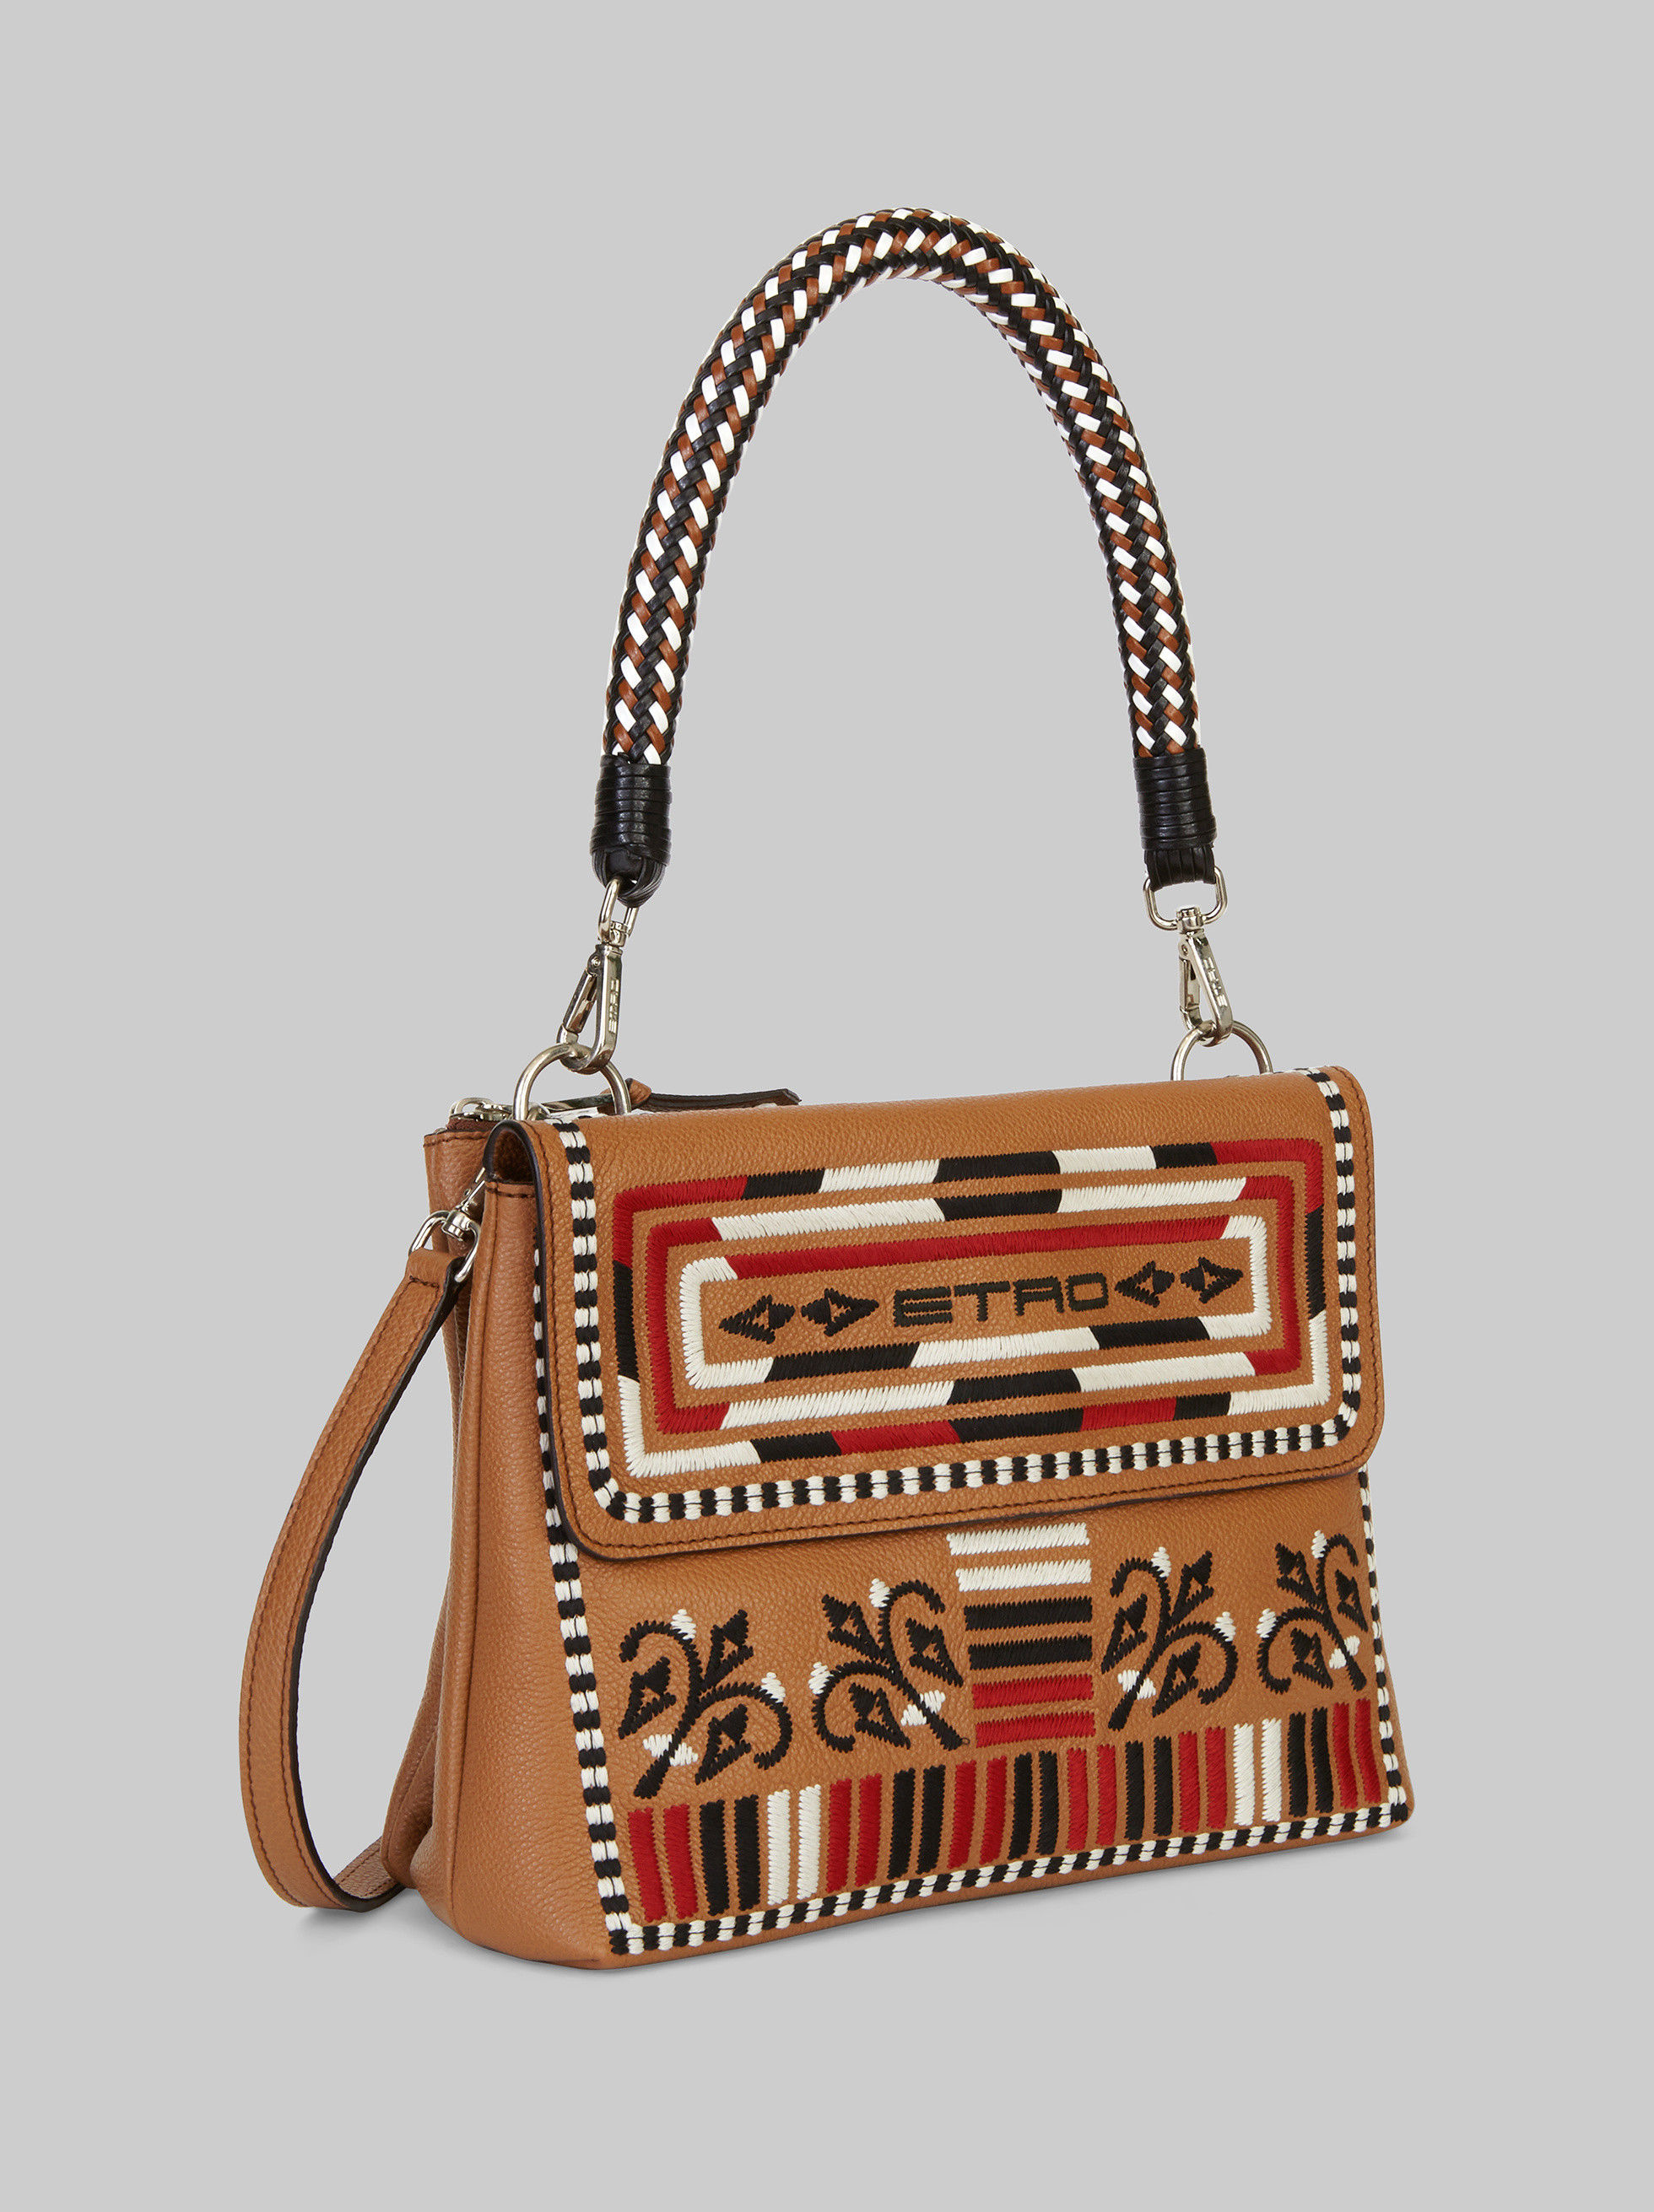 EMBROIDERED FOULARD SHOULDER BAG